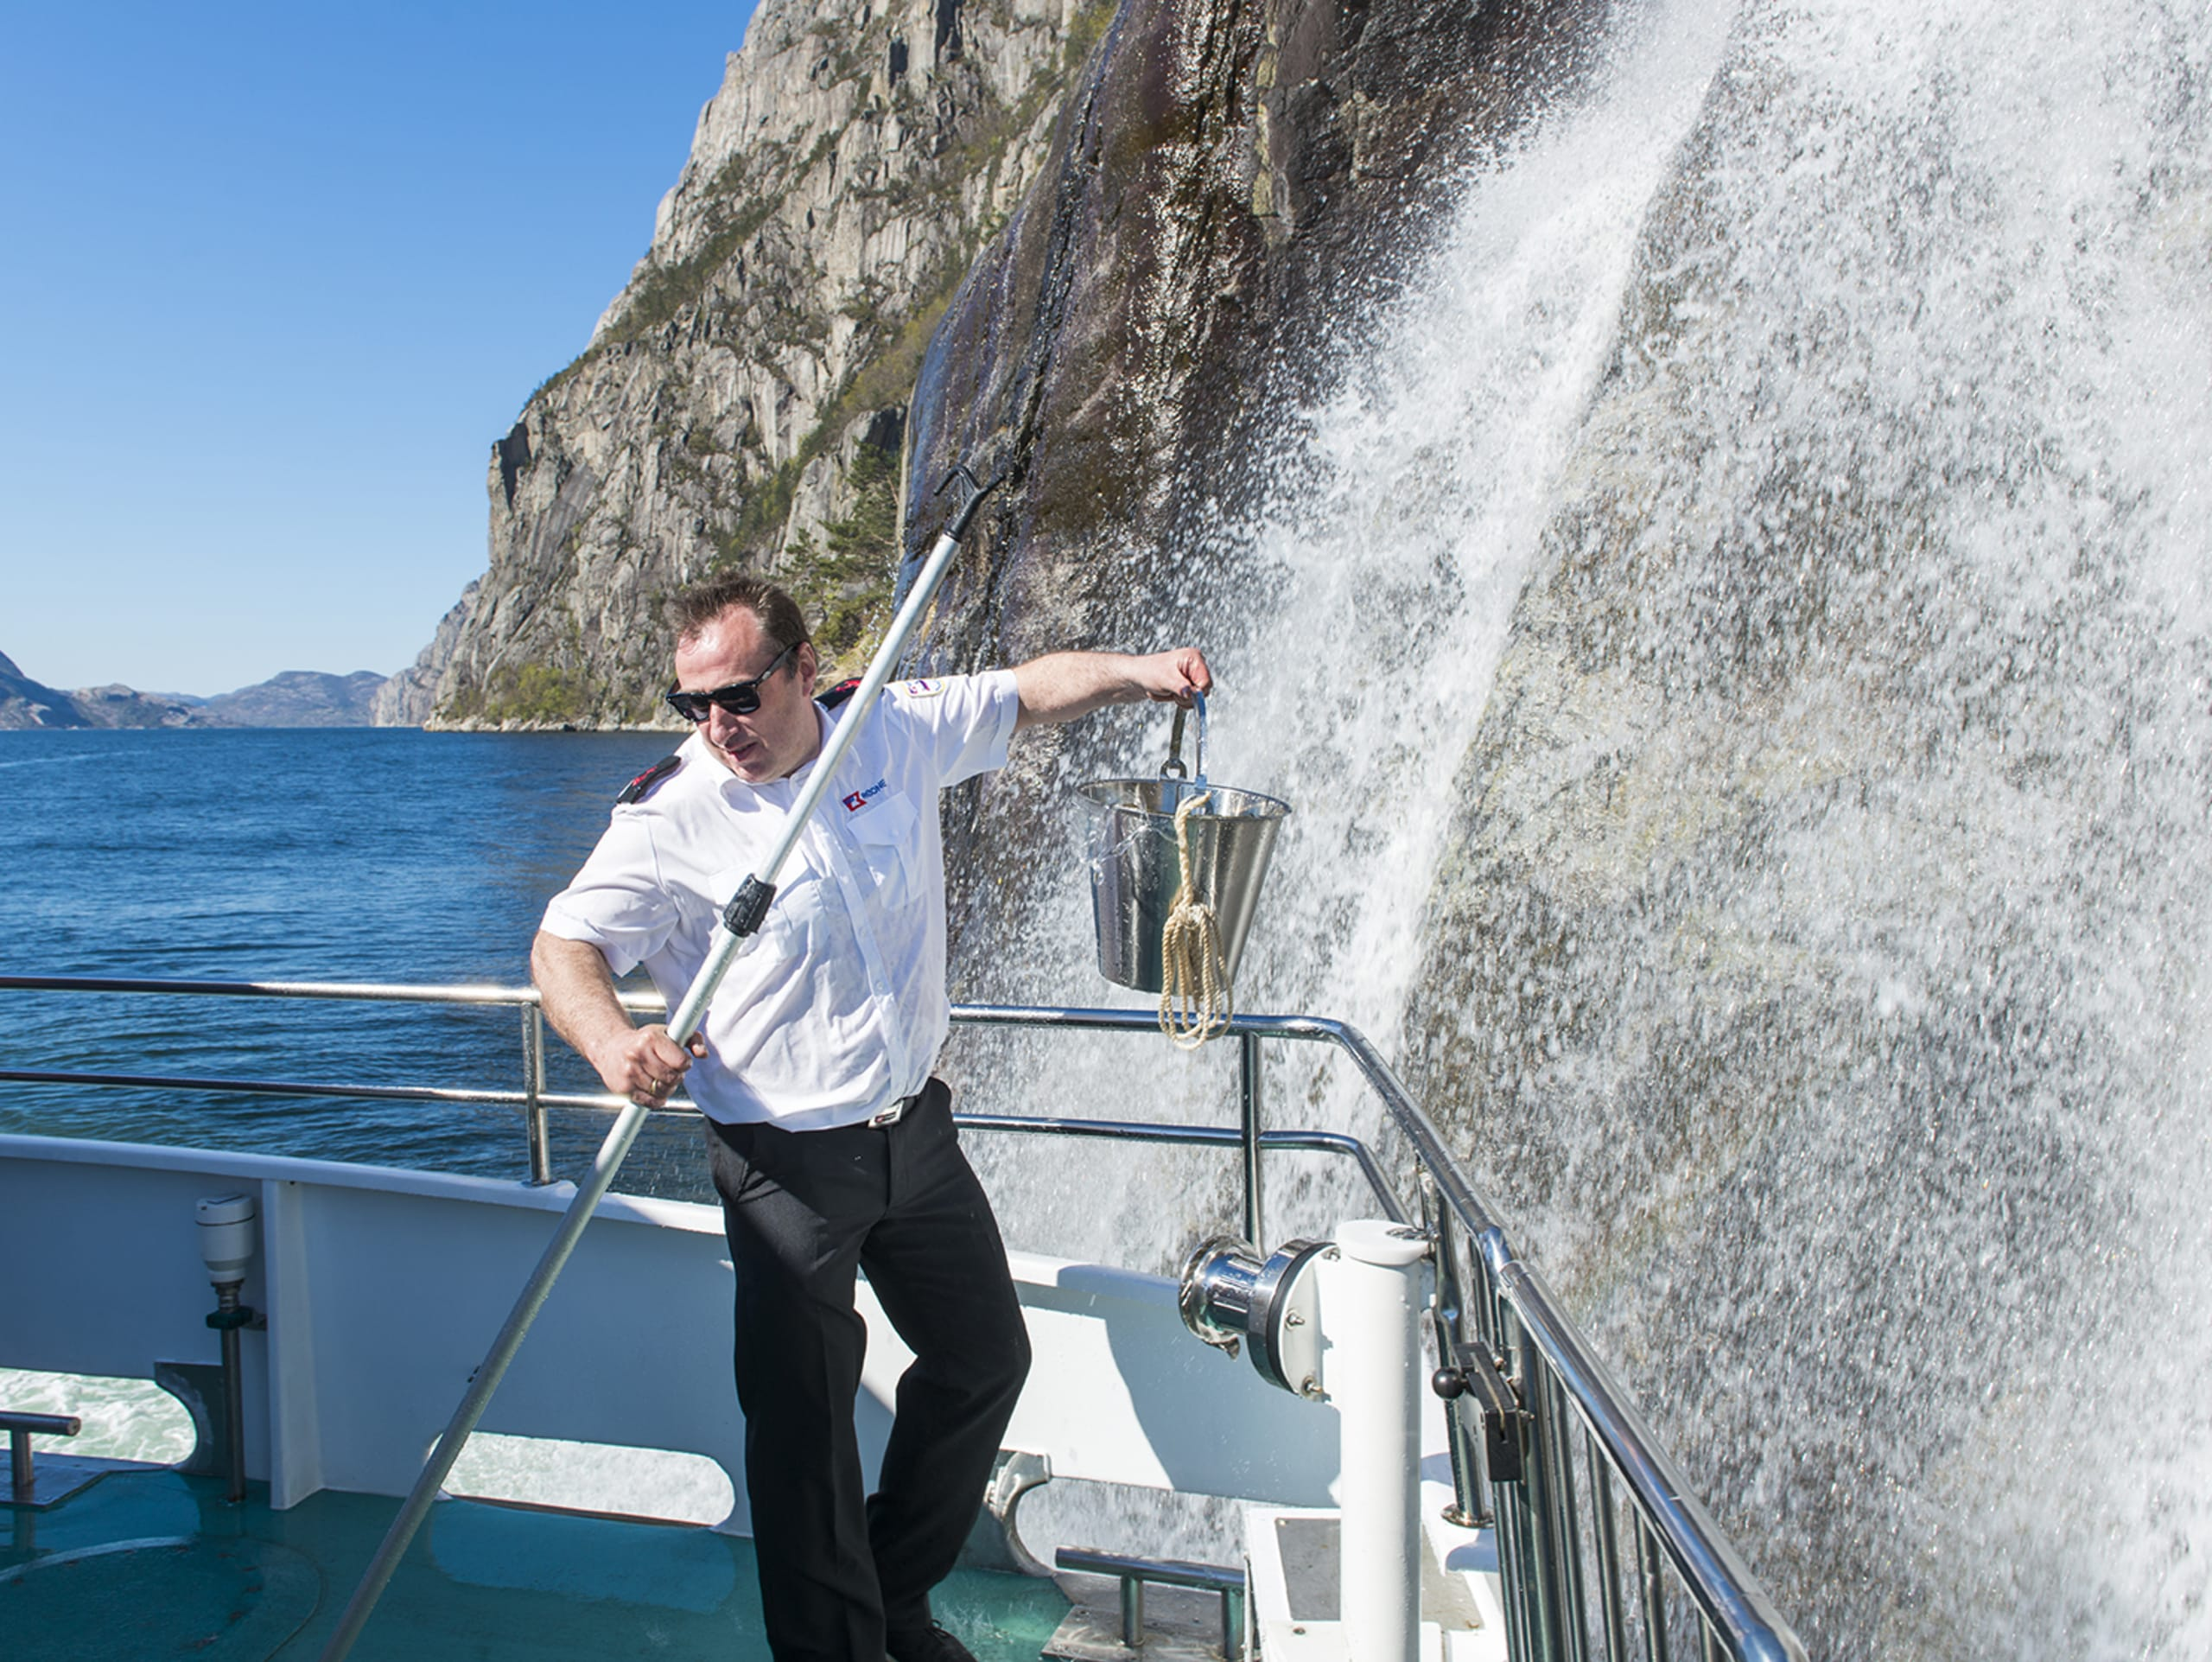 Captain getting water from Hengjanefossen waterfall